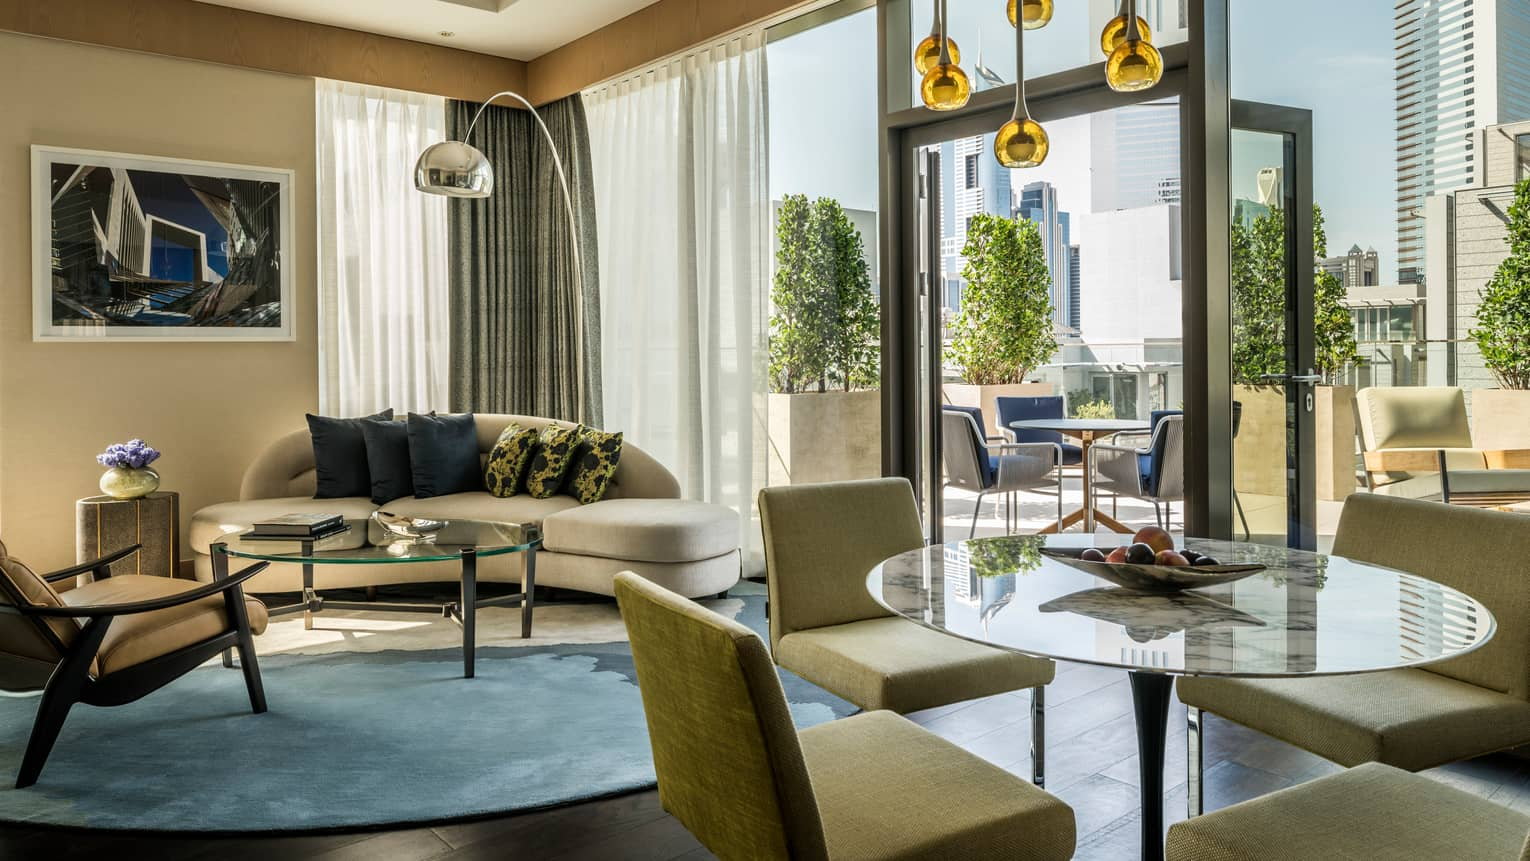 Modern hotel suite living room sofa, glass tables and chairs, open glass door to patio